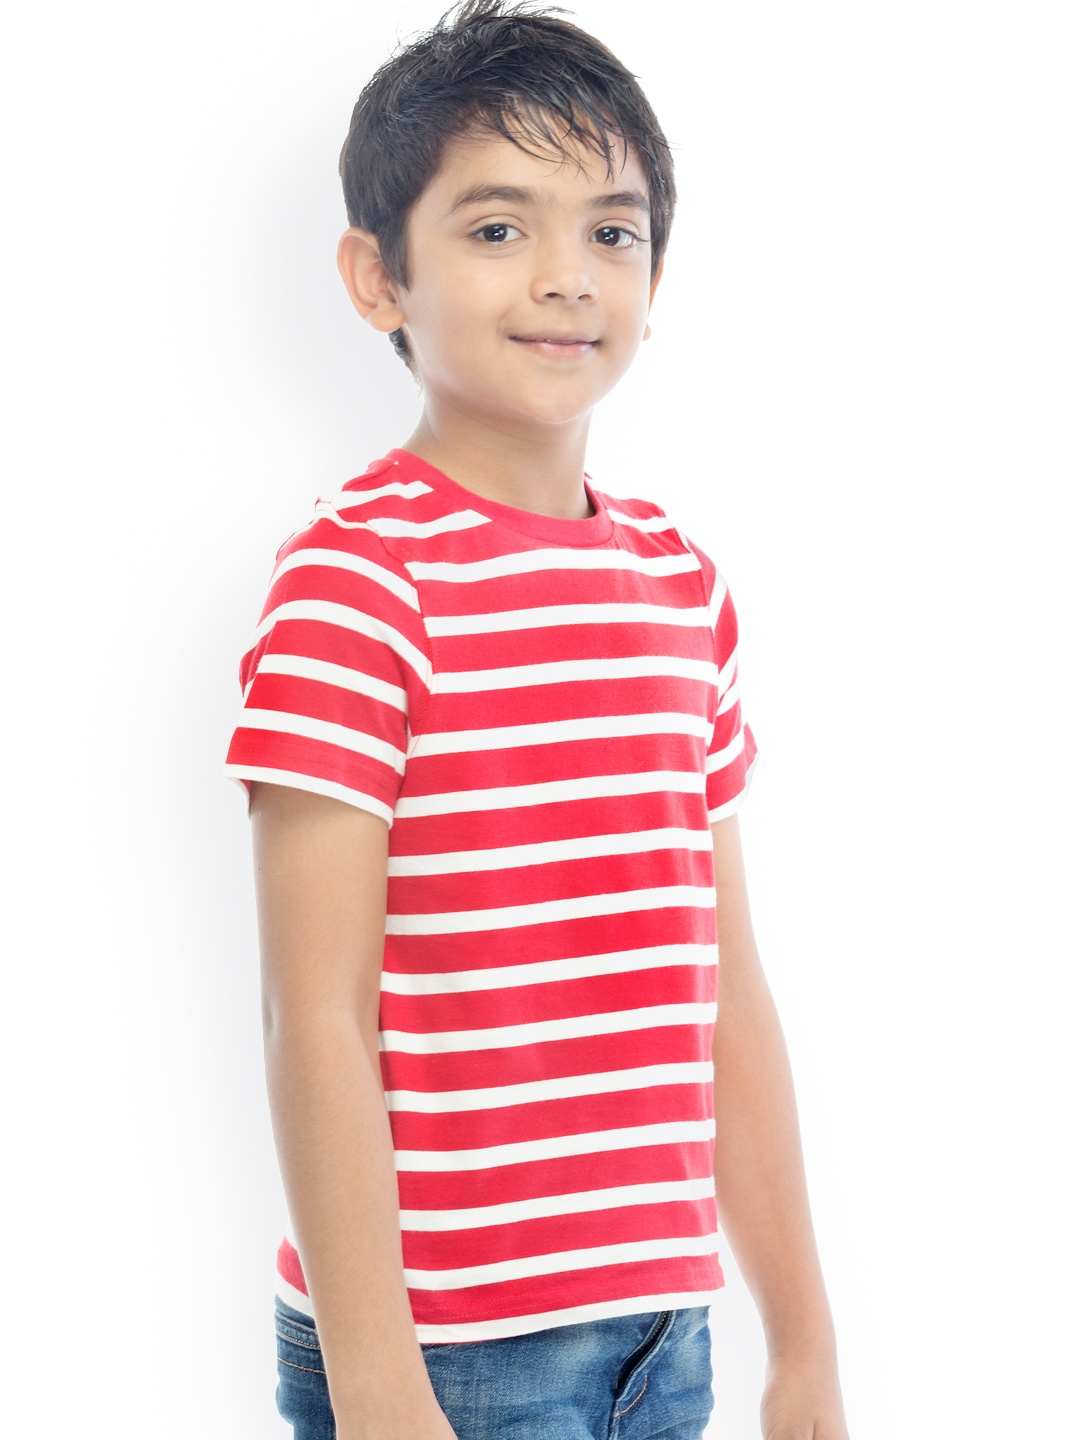 Loose, baggy t-shirts are the preferred ones amongst boys. Buy t-shirts for boys online at worldofweapons.tk! T-shirts are the basic every day clothing requirement for men and boys.